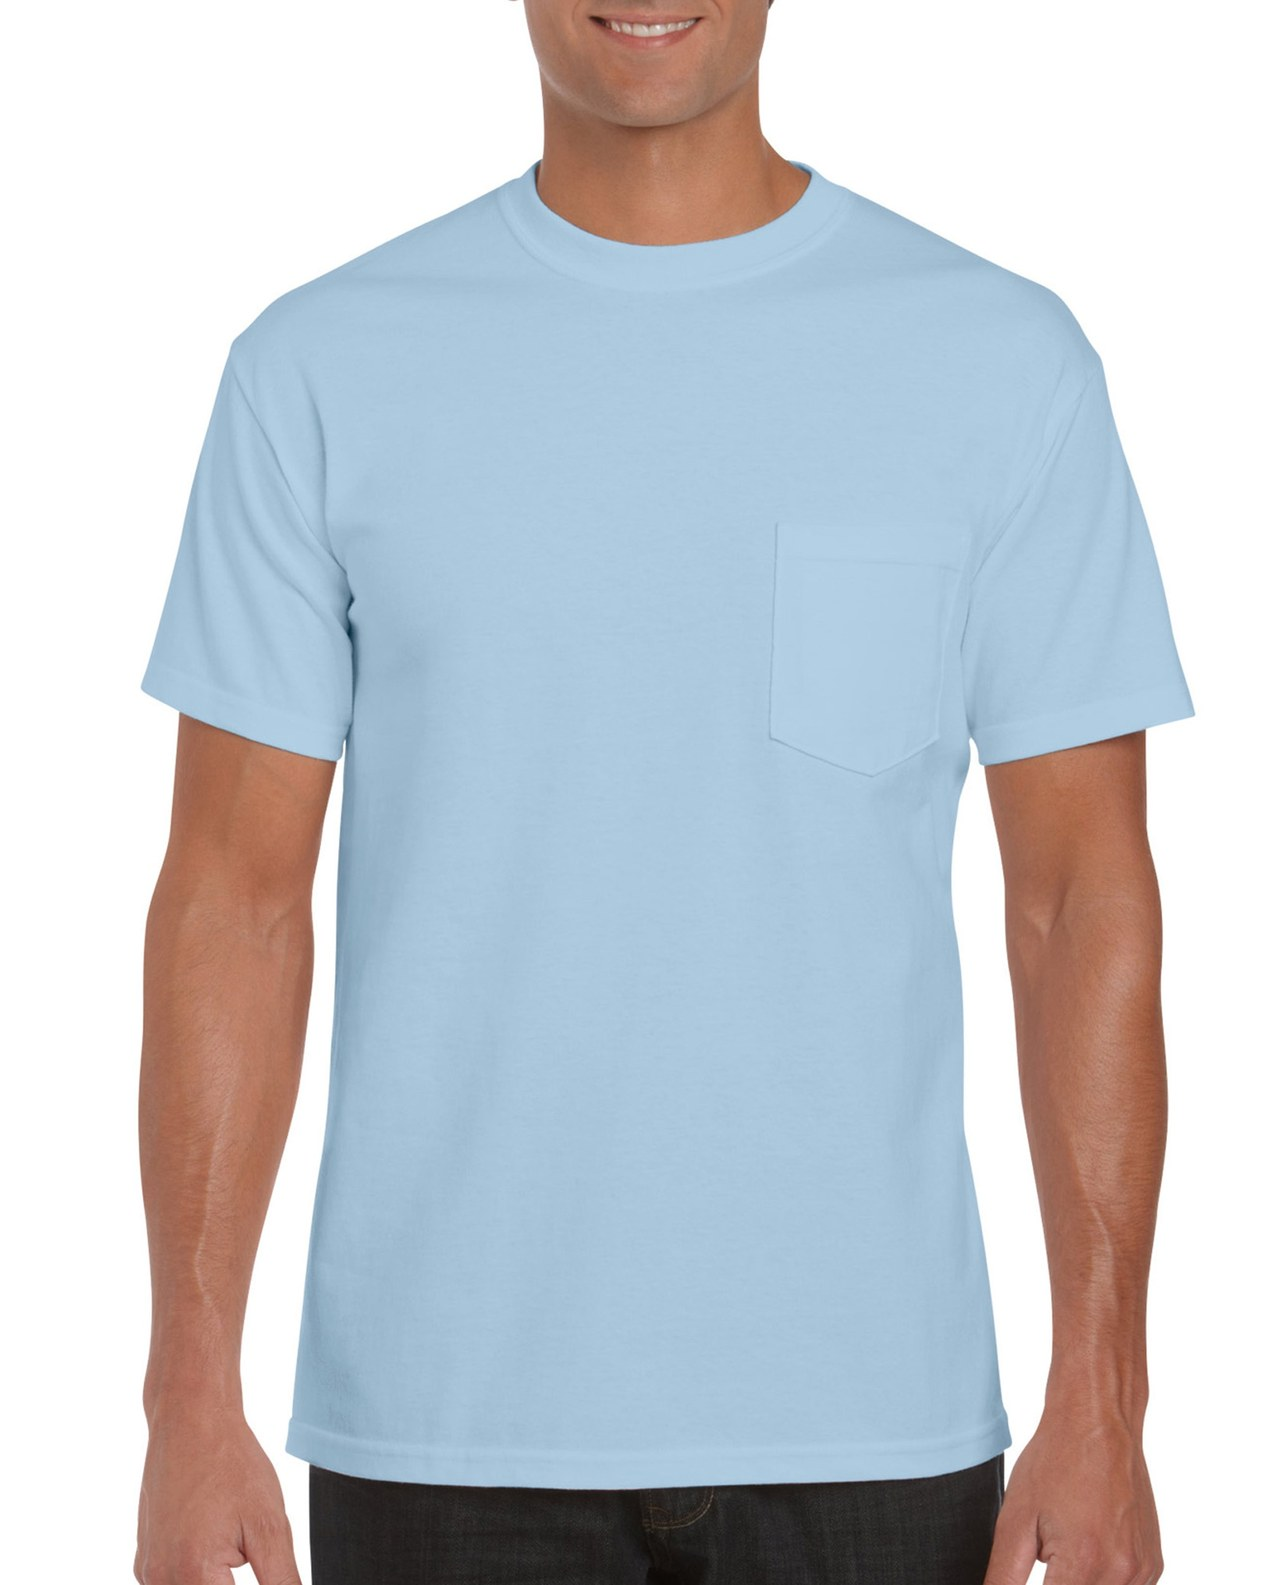 2300 gildan ultra cotton 6 0 oz yd adult t shirt for Blue t shirt template